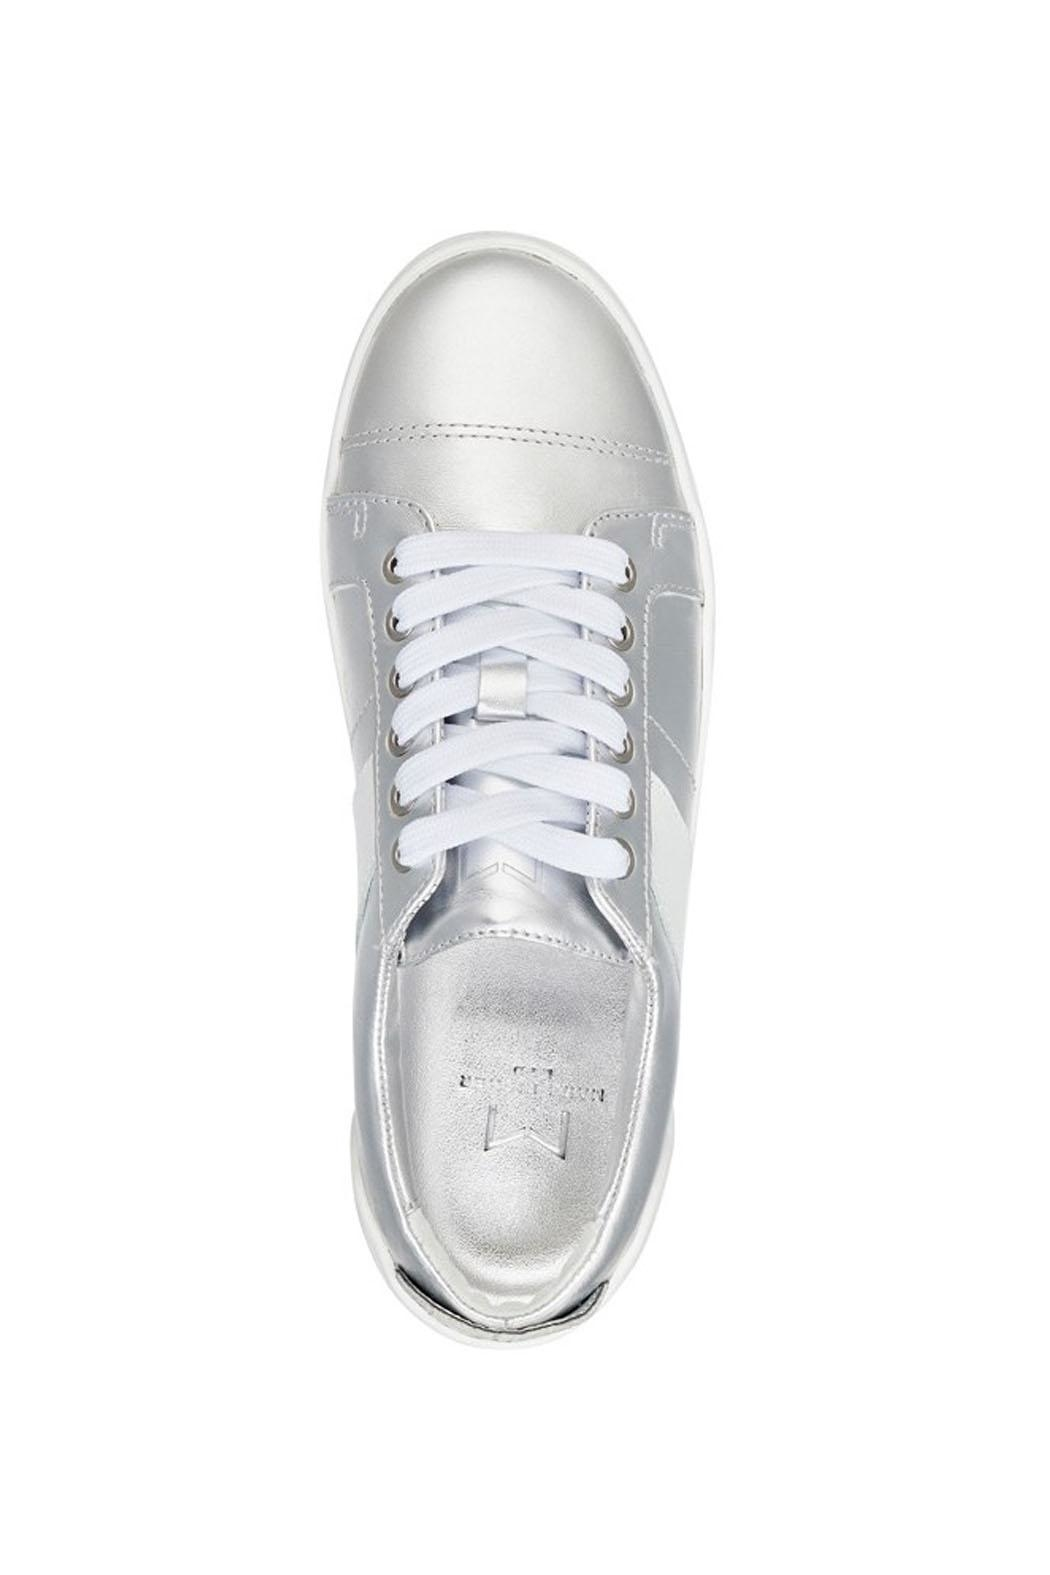 Marc Fisher LTD Candi White/silver Sneaker - Back Cropped Image